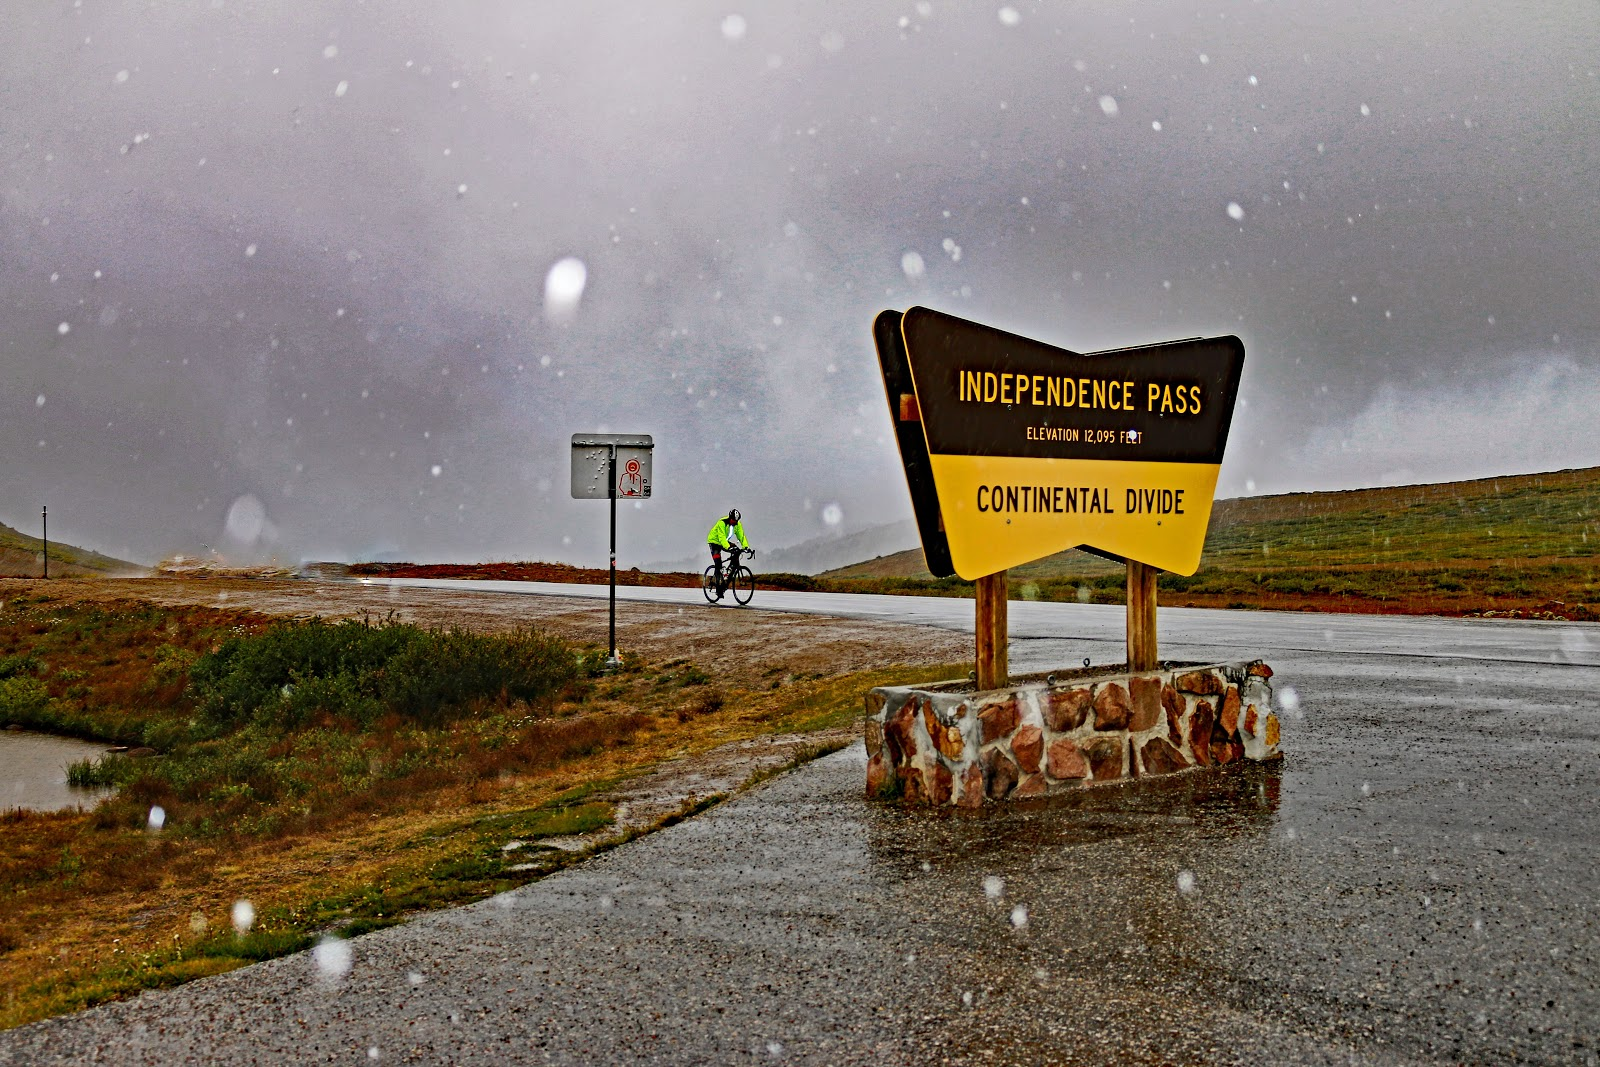 Bicycle ride up Independence Pass - Continental Divide sign and cyclist riding to it.